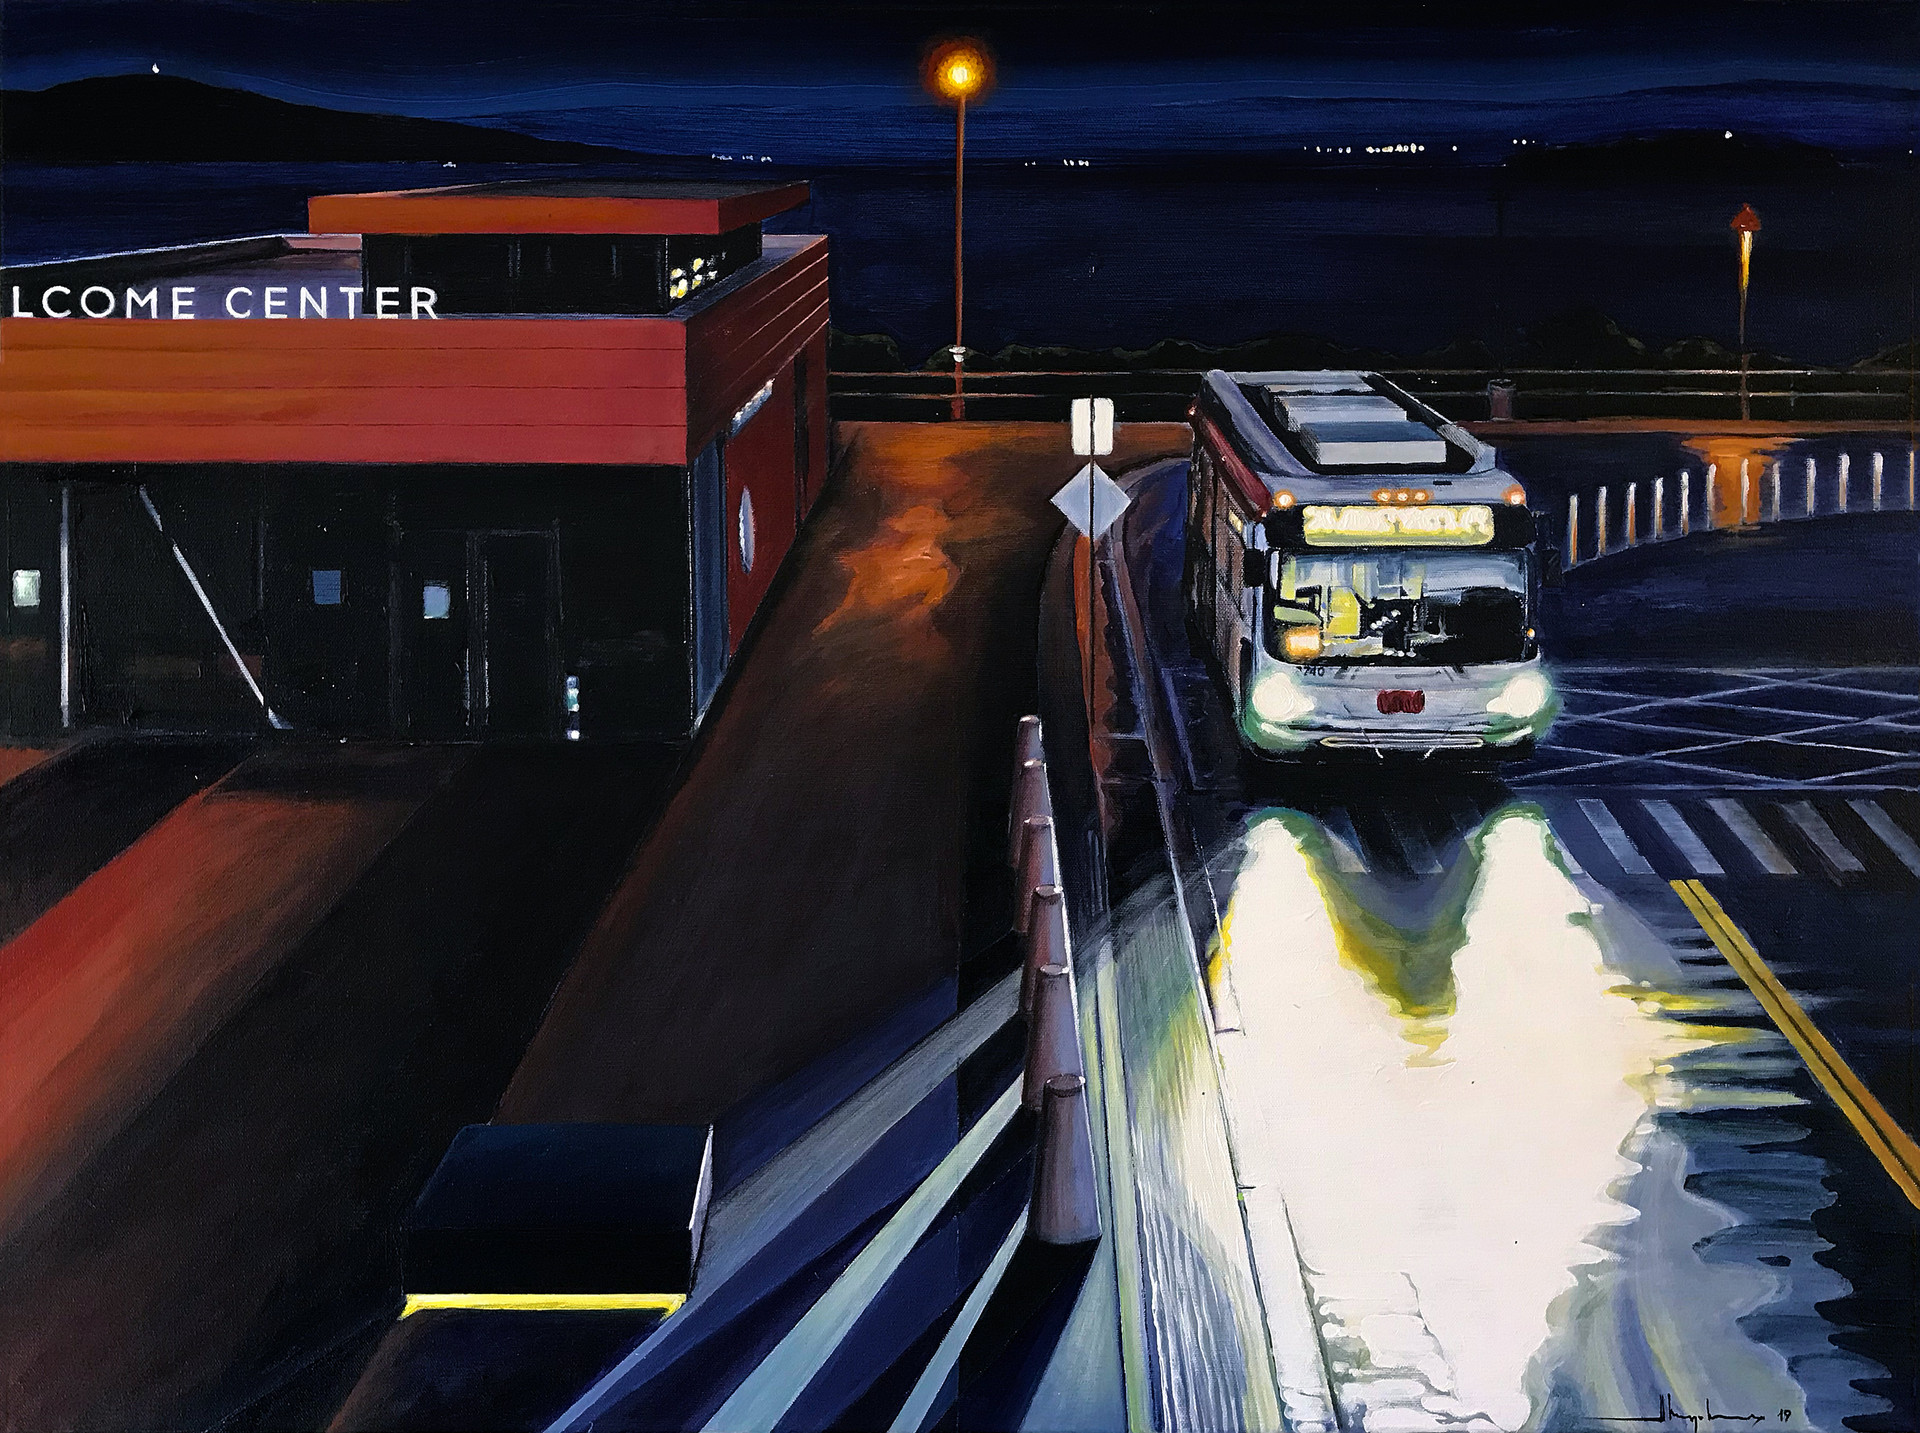 NOCTURNE #10 / Welcome Center